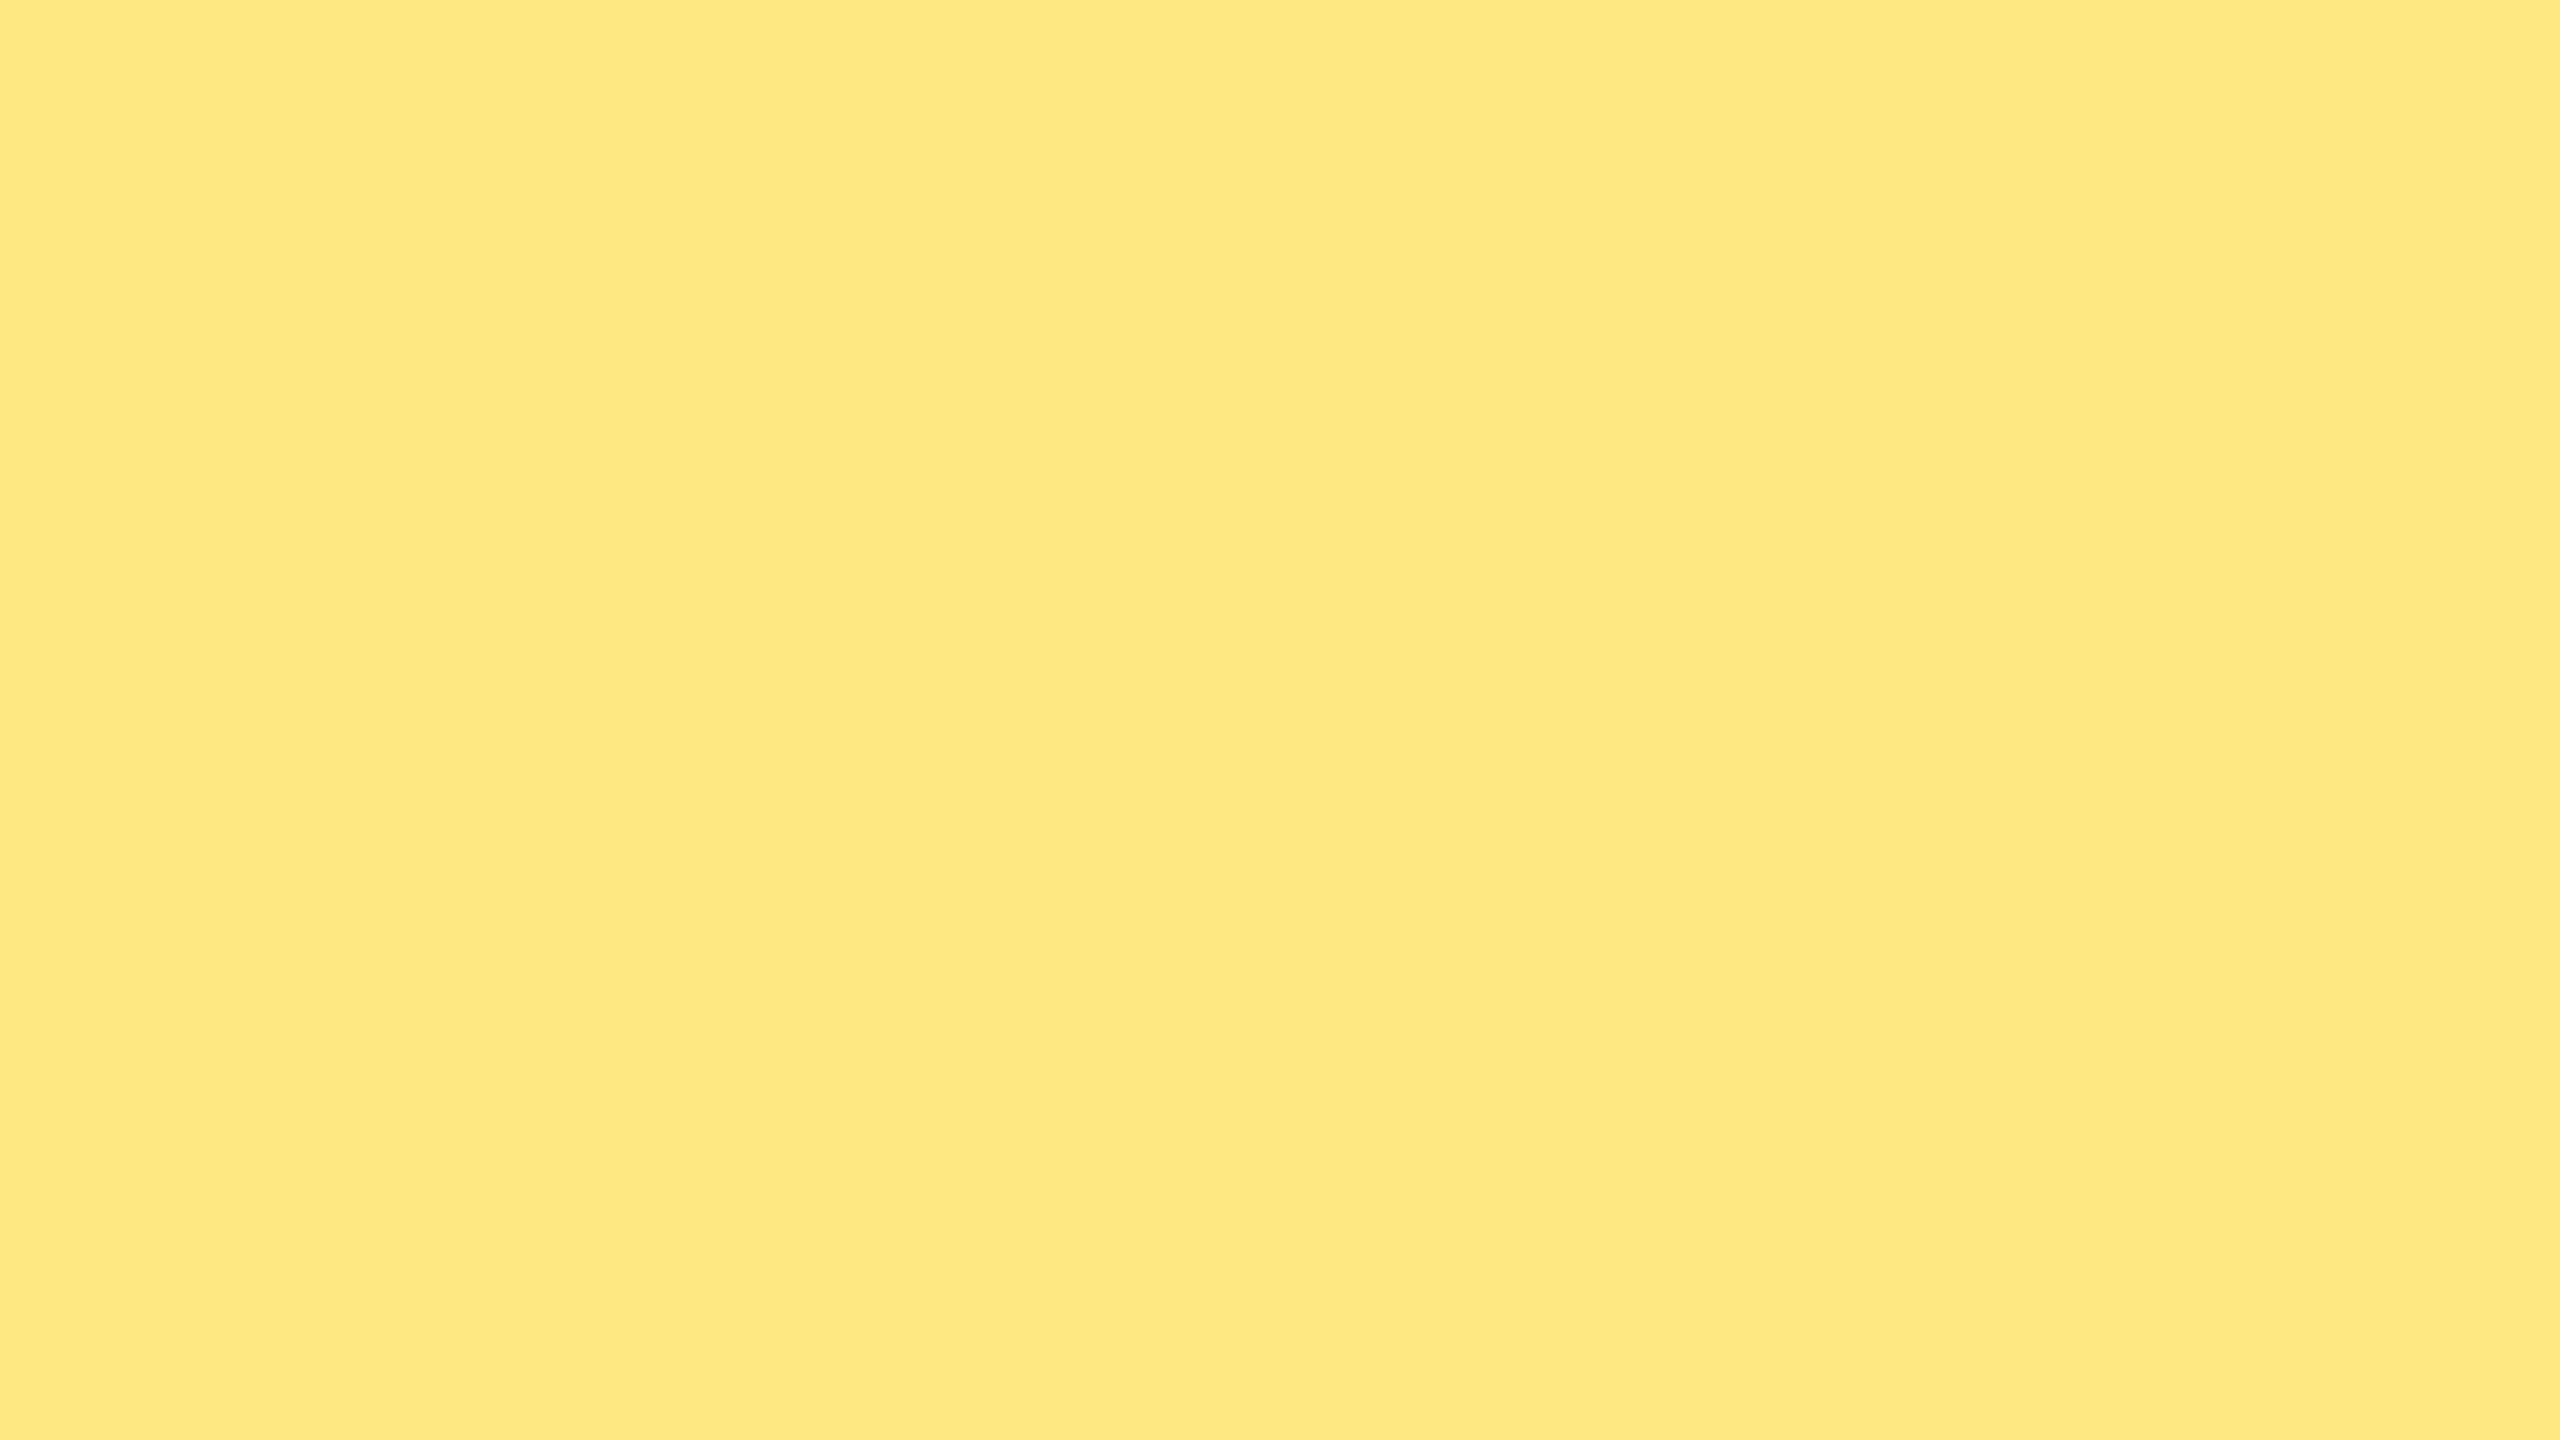 2560x1440 Yellow Crayola Solid Color Background